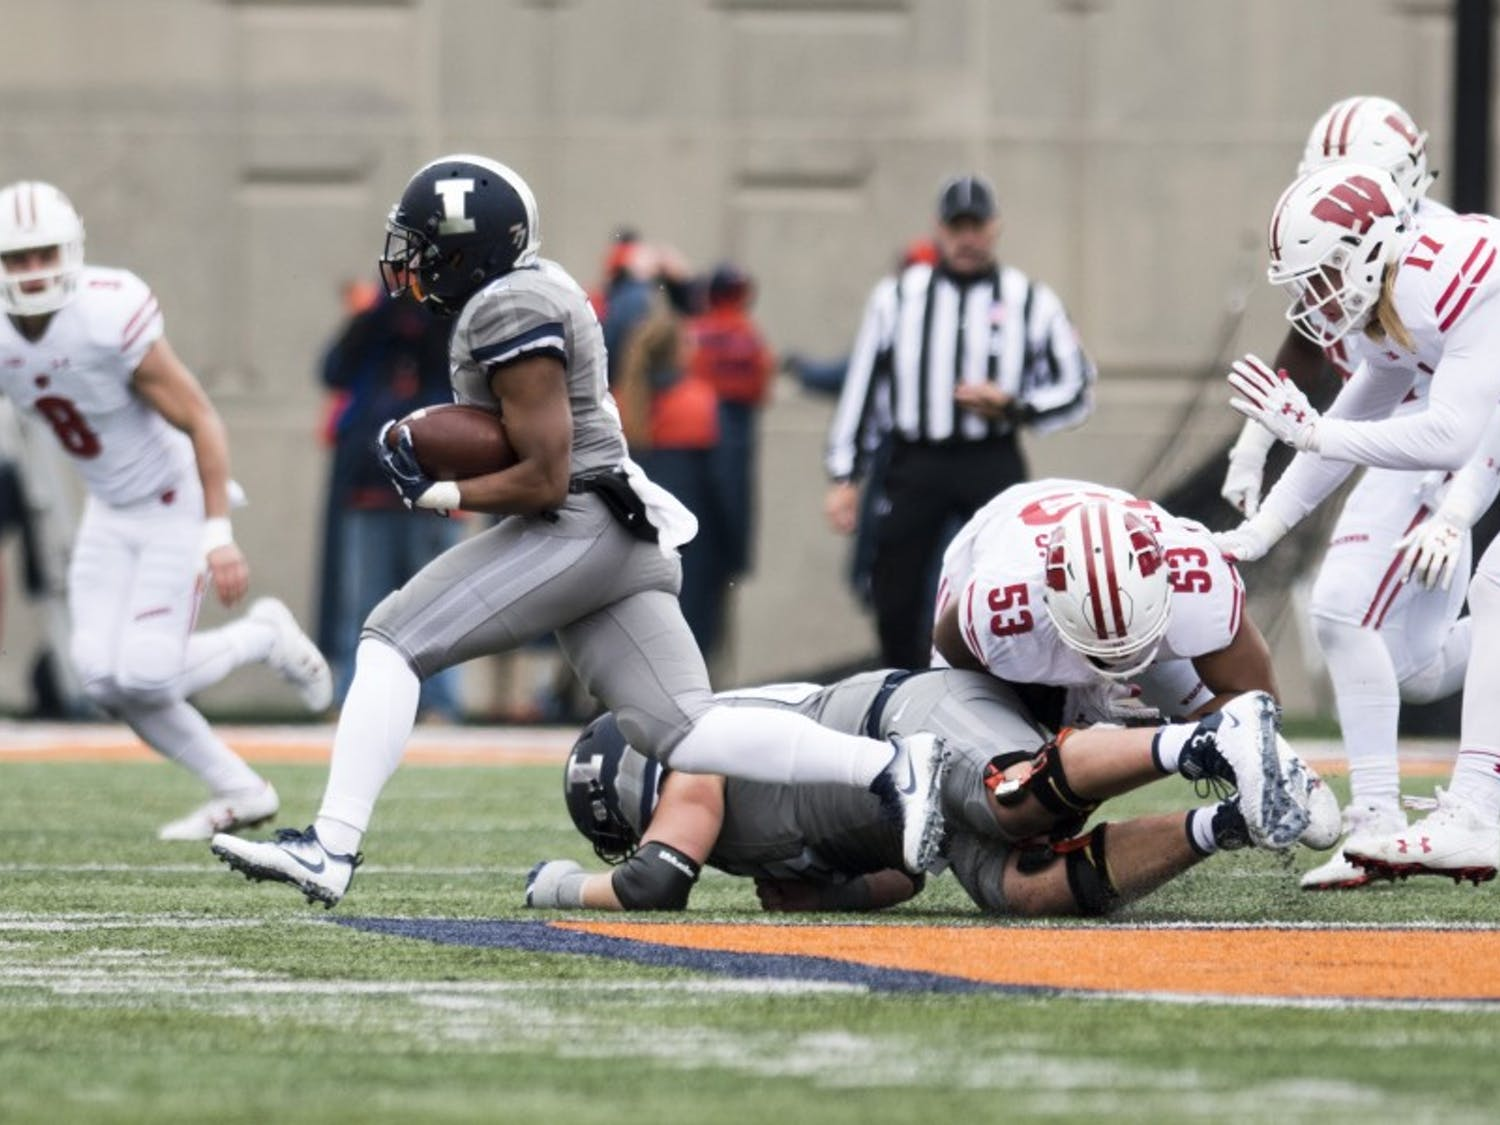 Illinois is averaging 229 yards per game on the ground in the2018season and already has more wins in 6 games than in the previous two seasons.